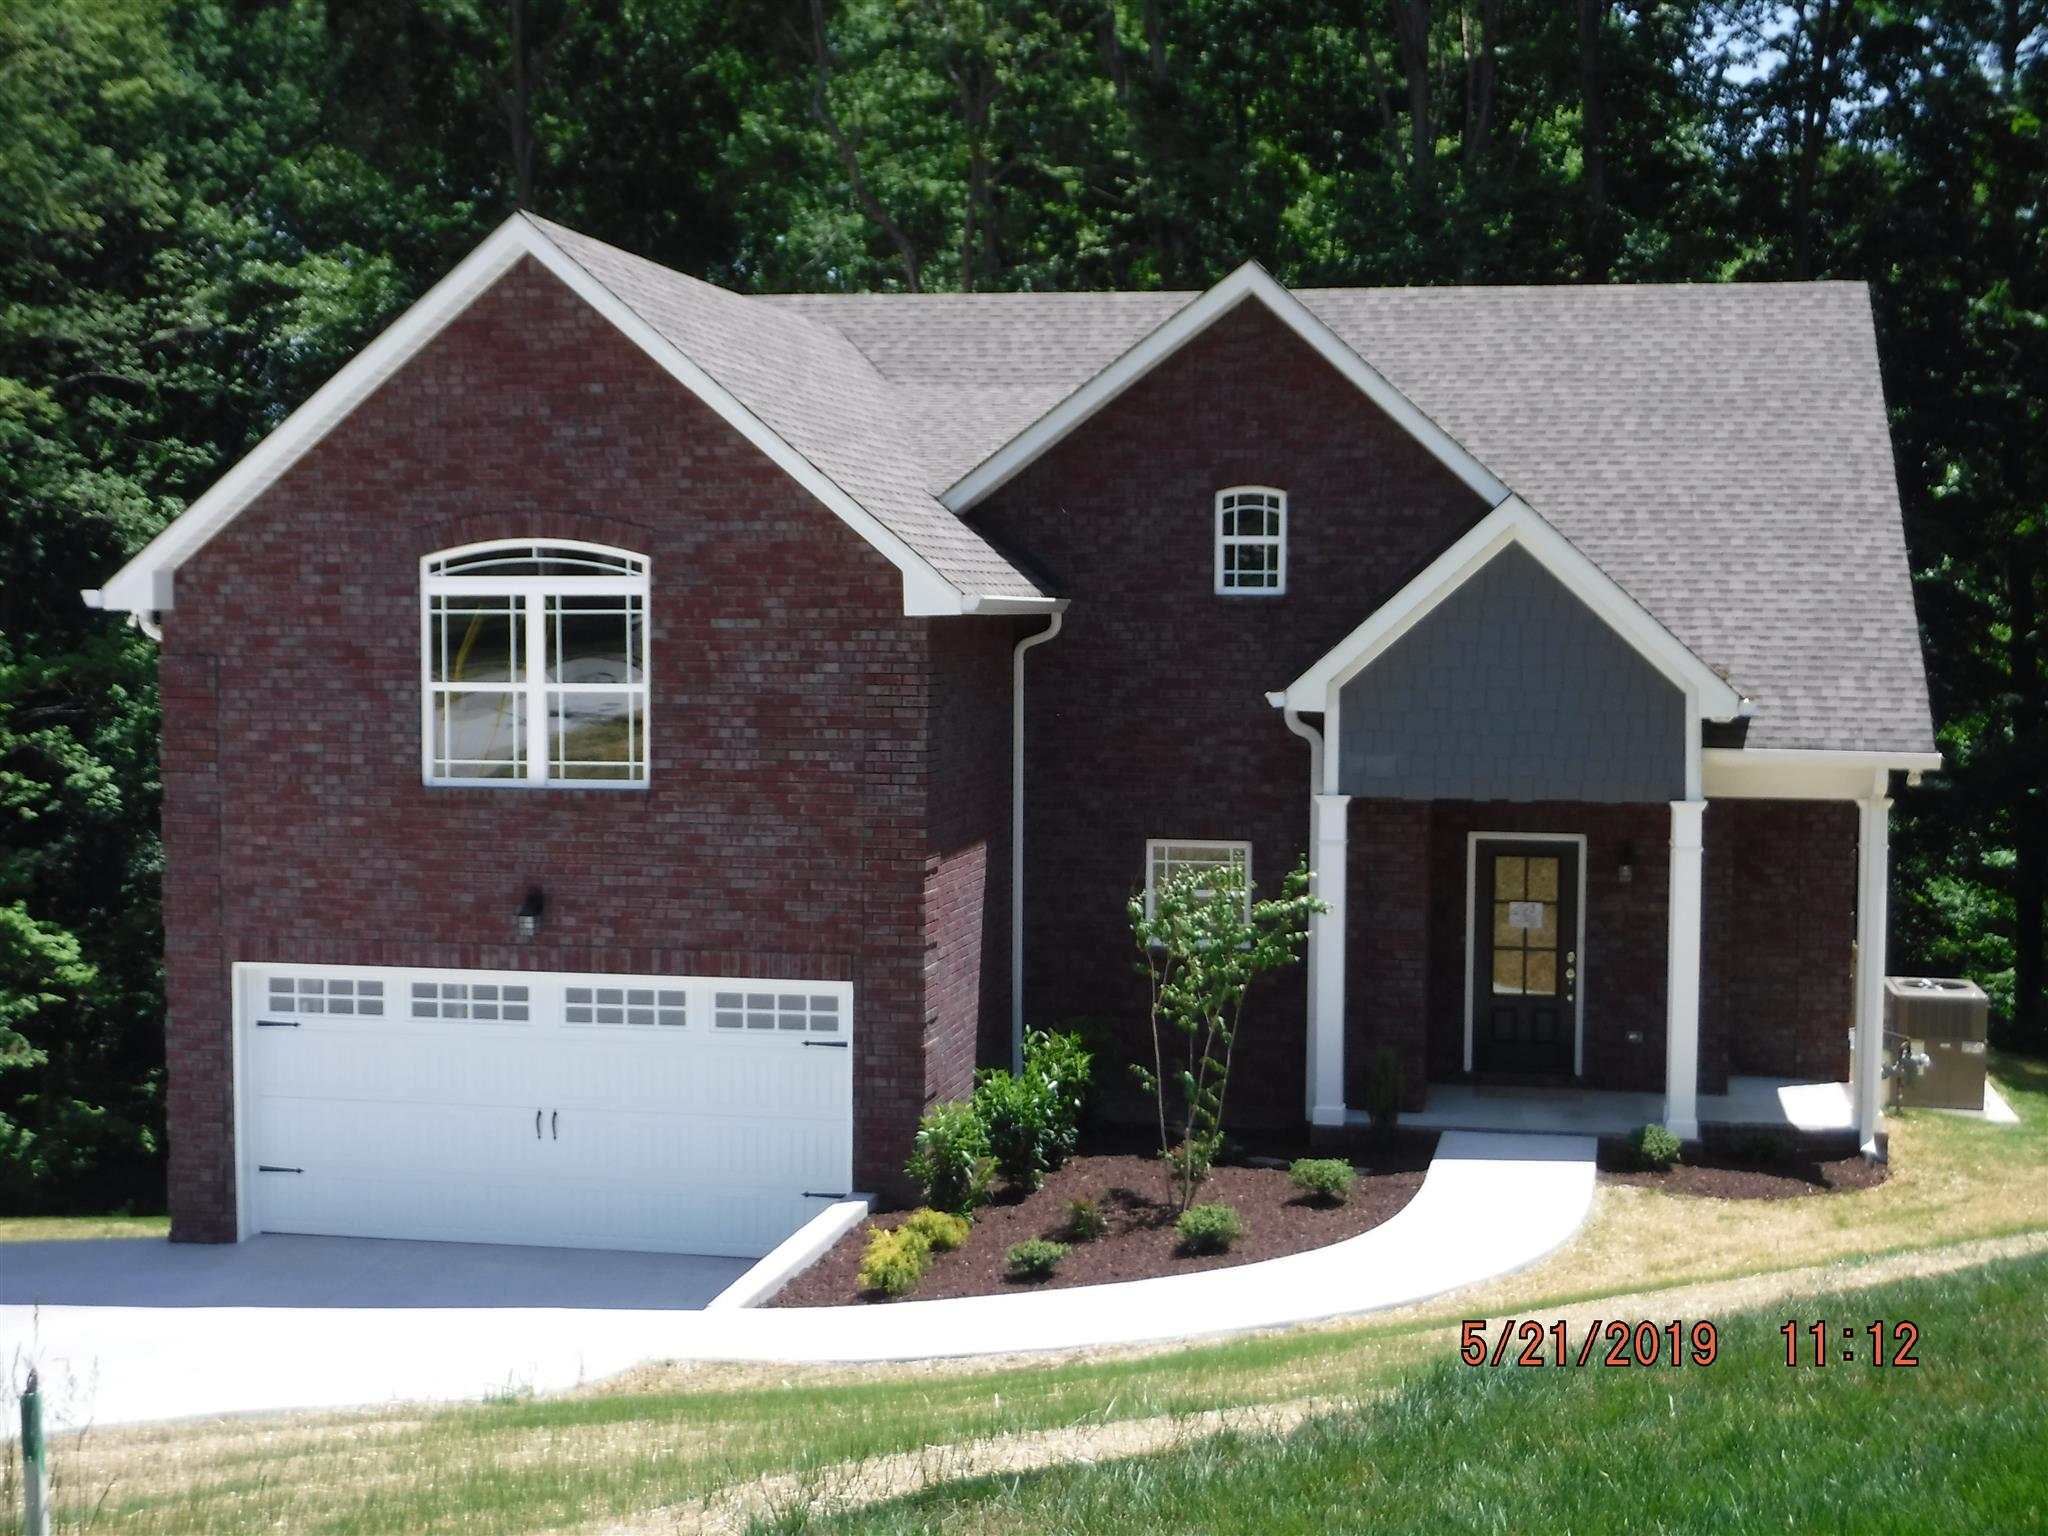 3047 Gracie Ann Dr Greenbrier, TN 37073